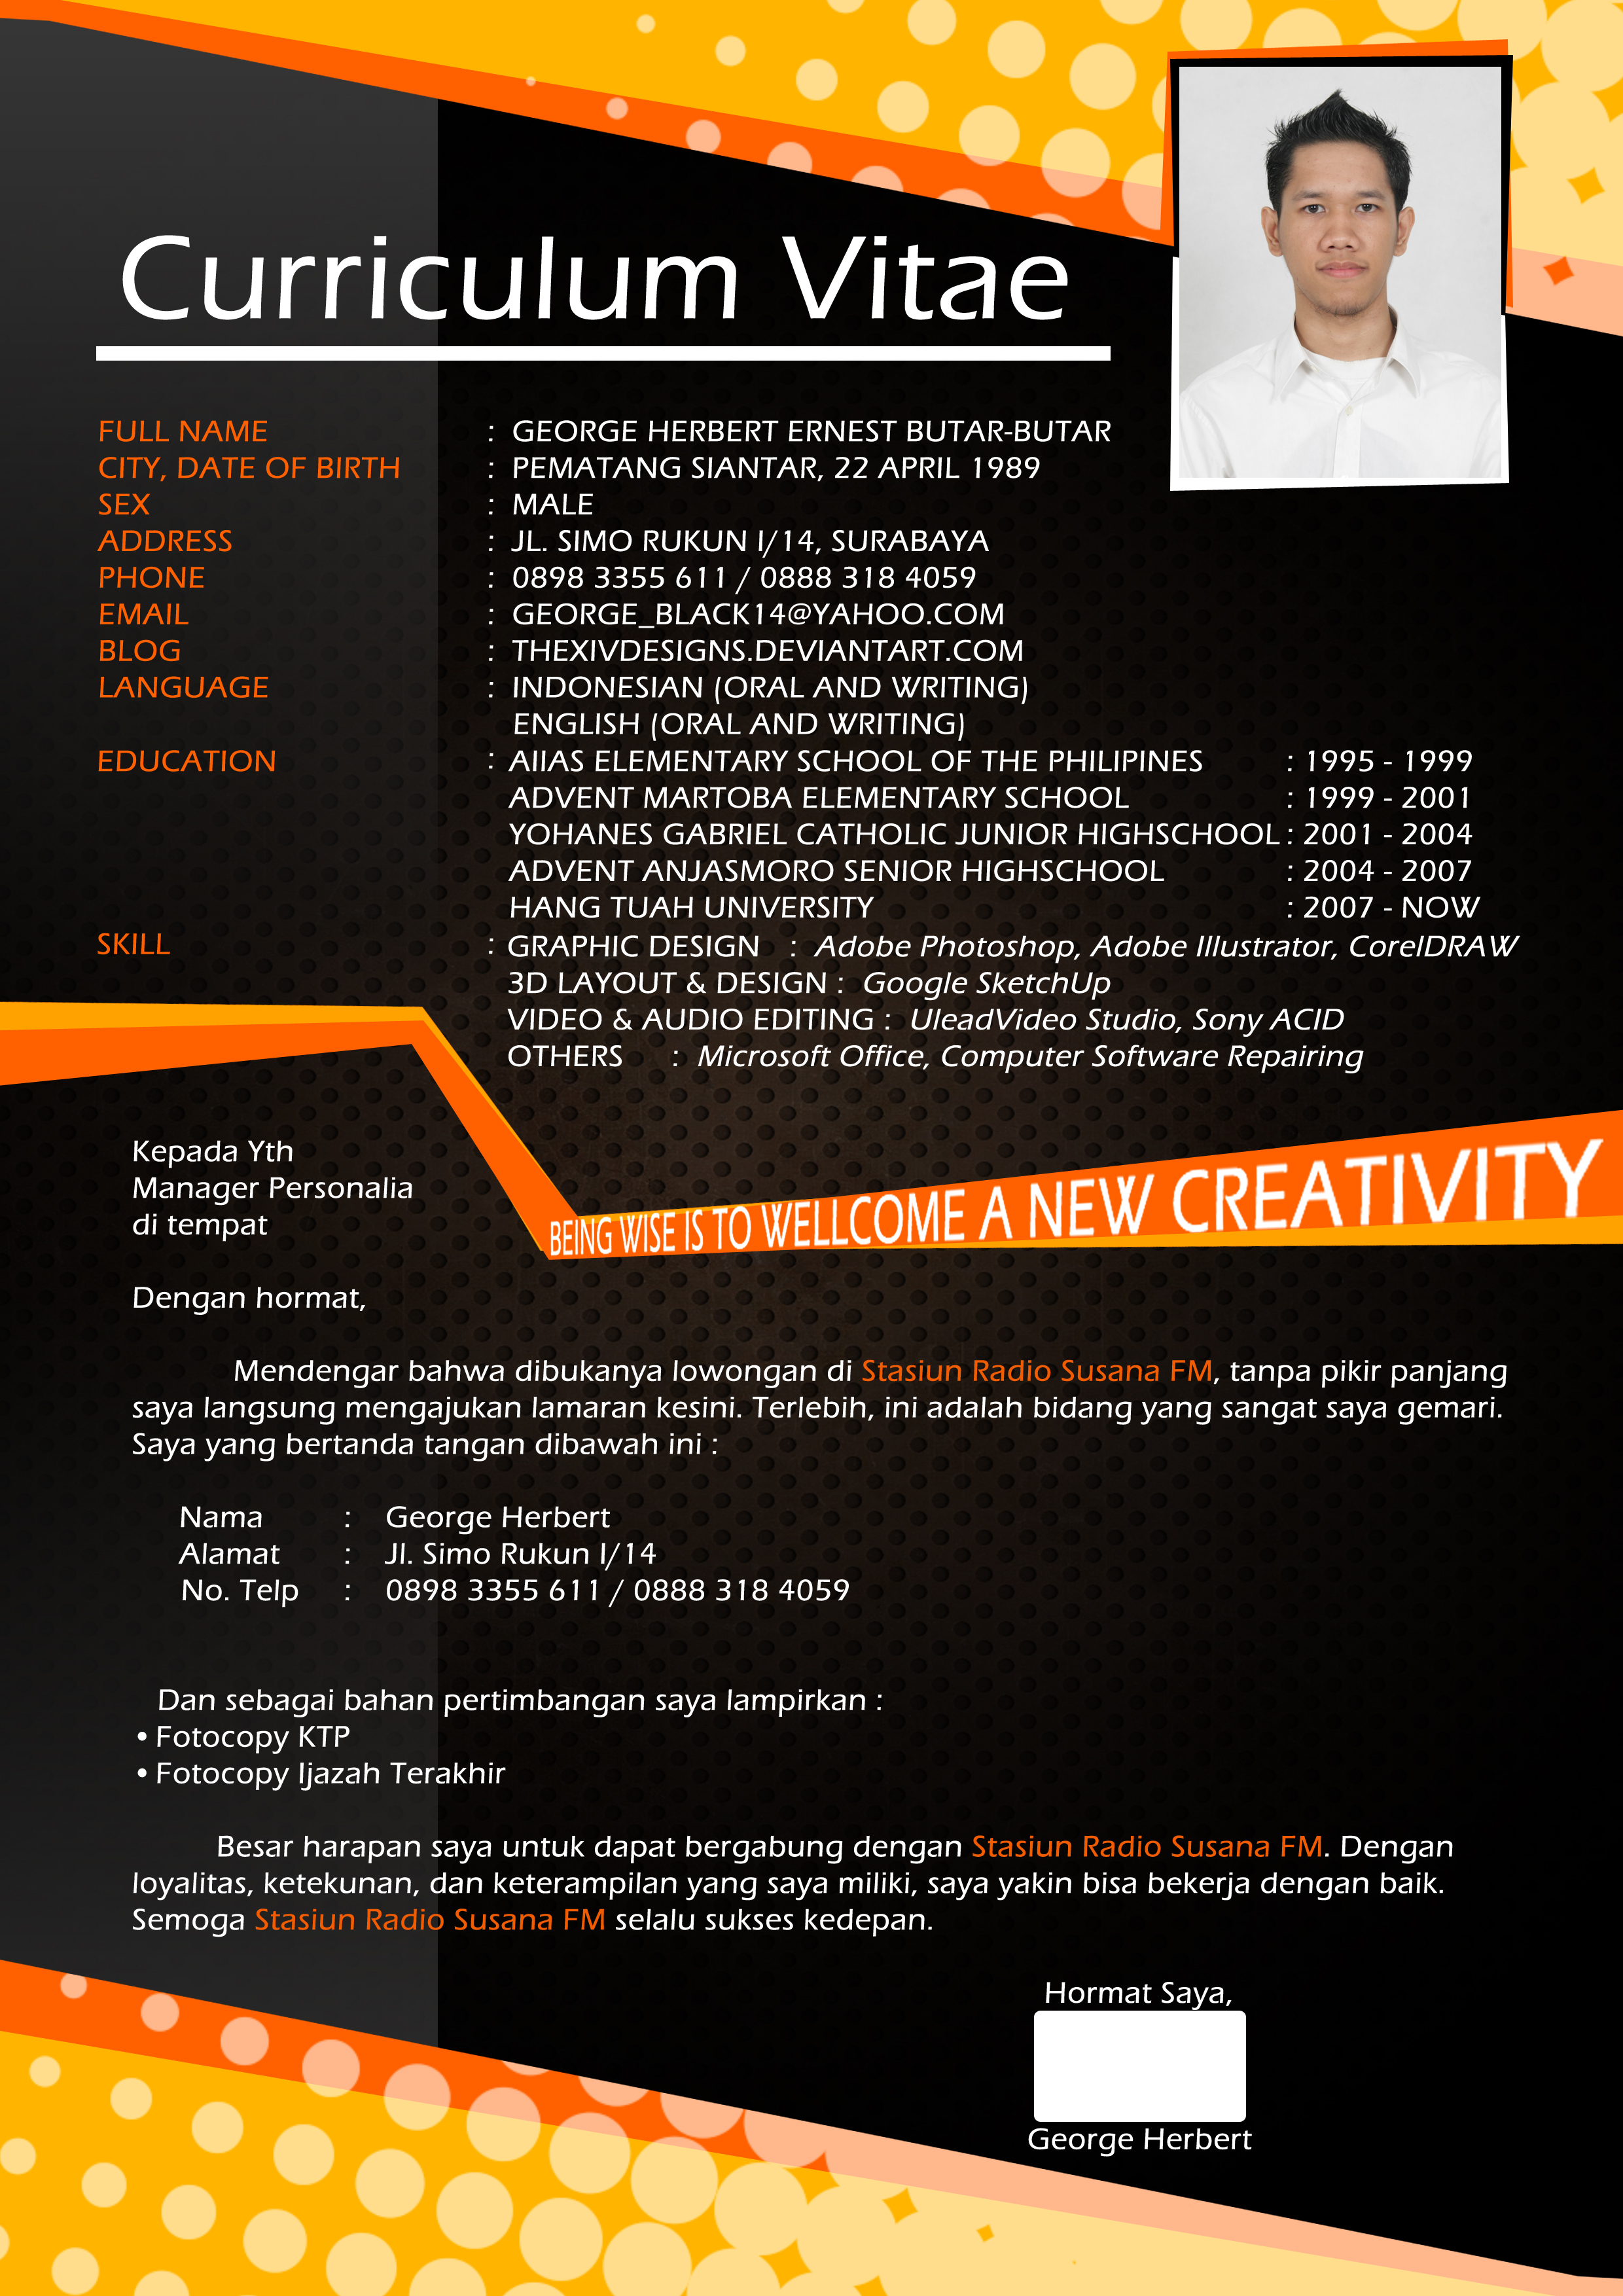 my curriculum vitae by thexivdesigns on my curriculum vitae by thexivdesigns my curriculum vitae by thexivdesigns